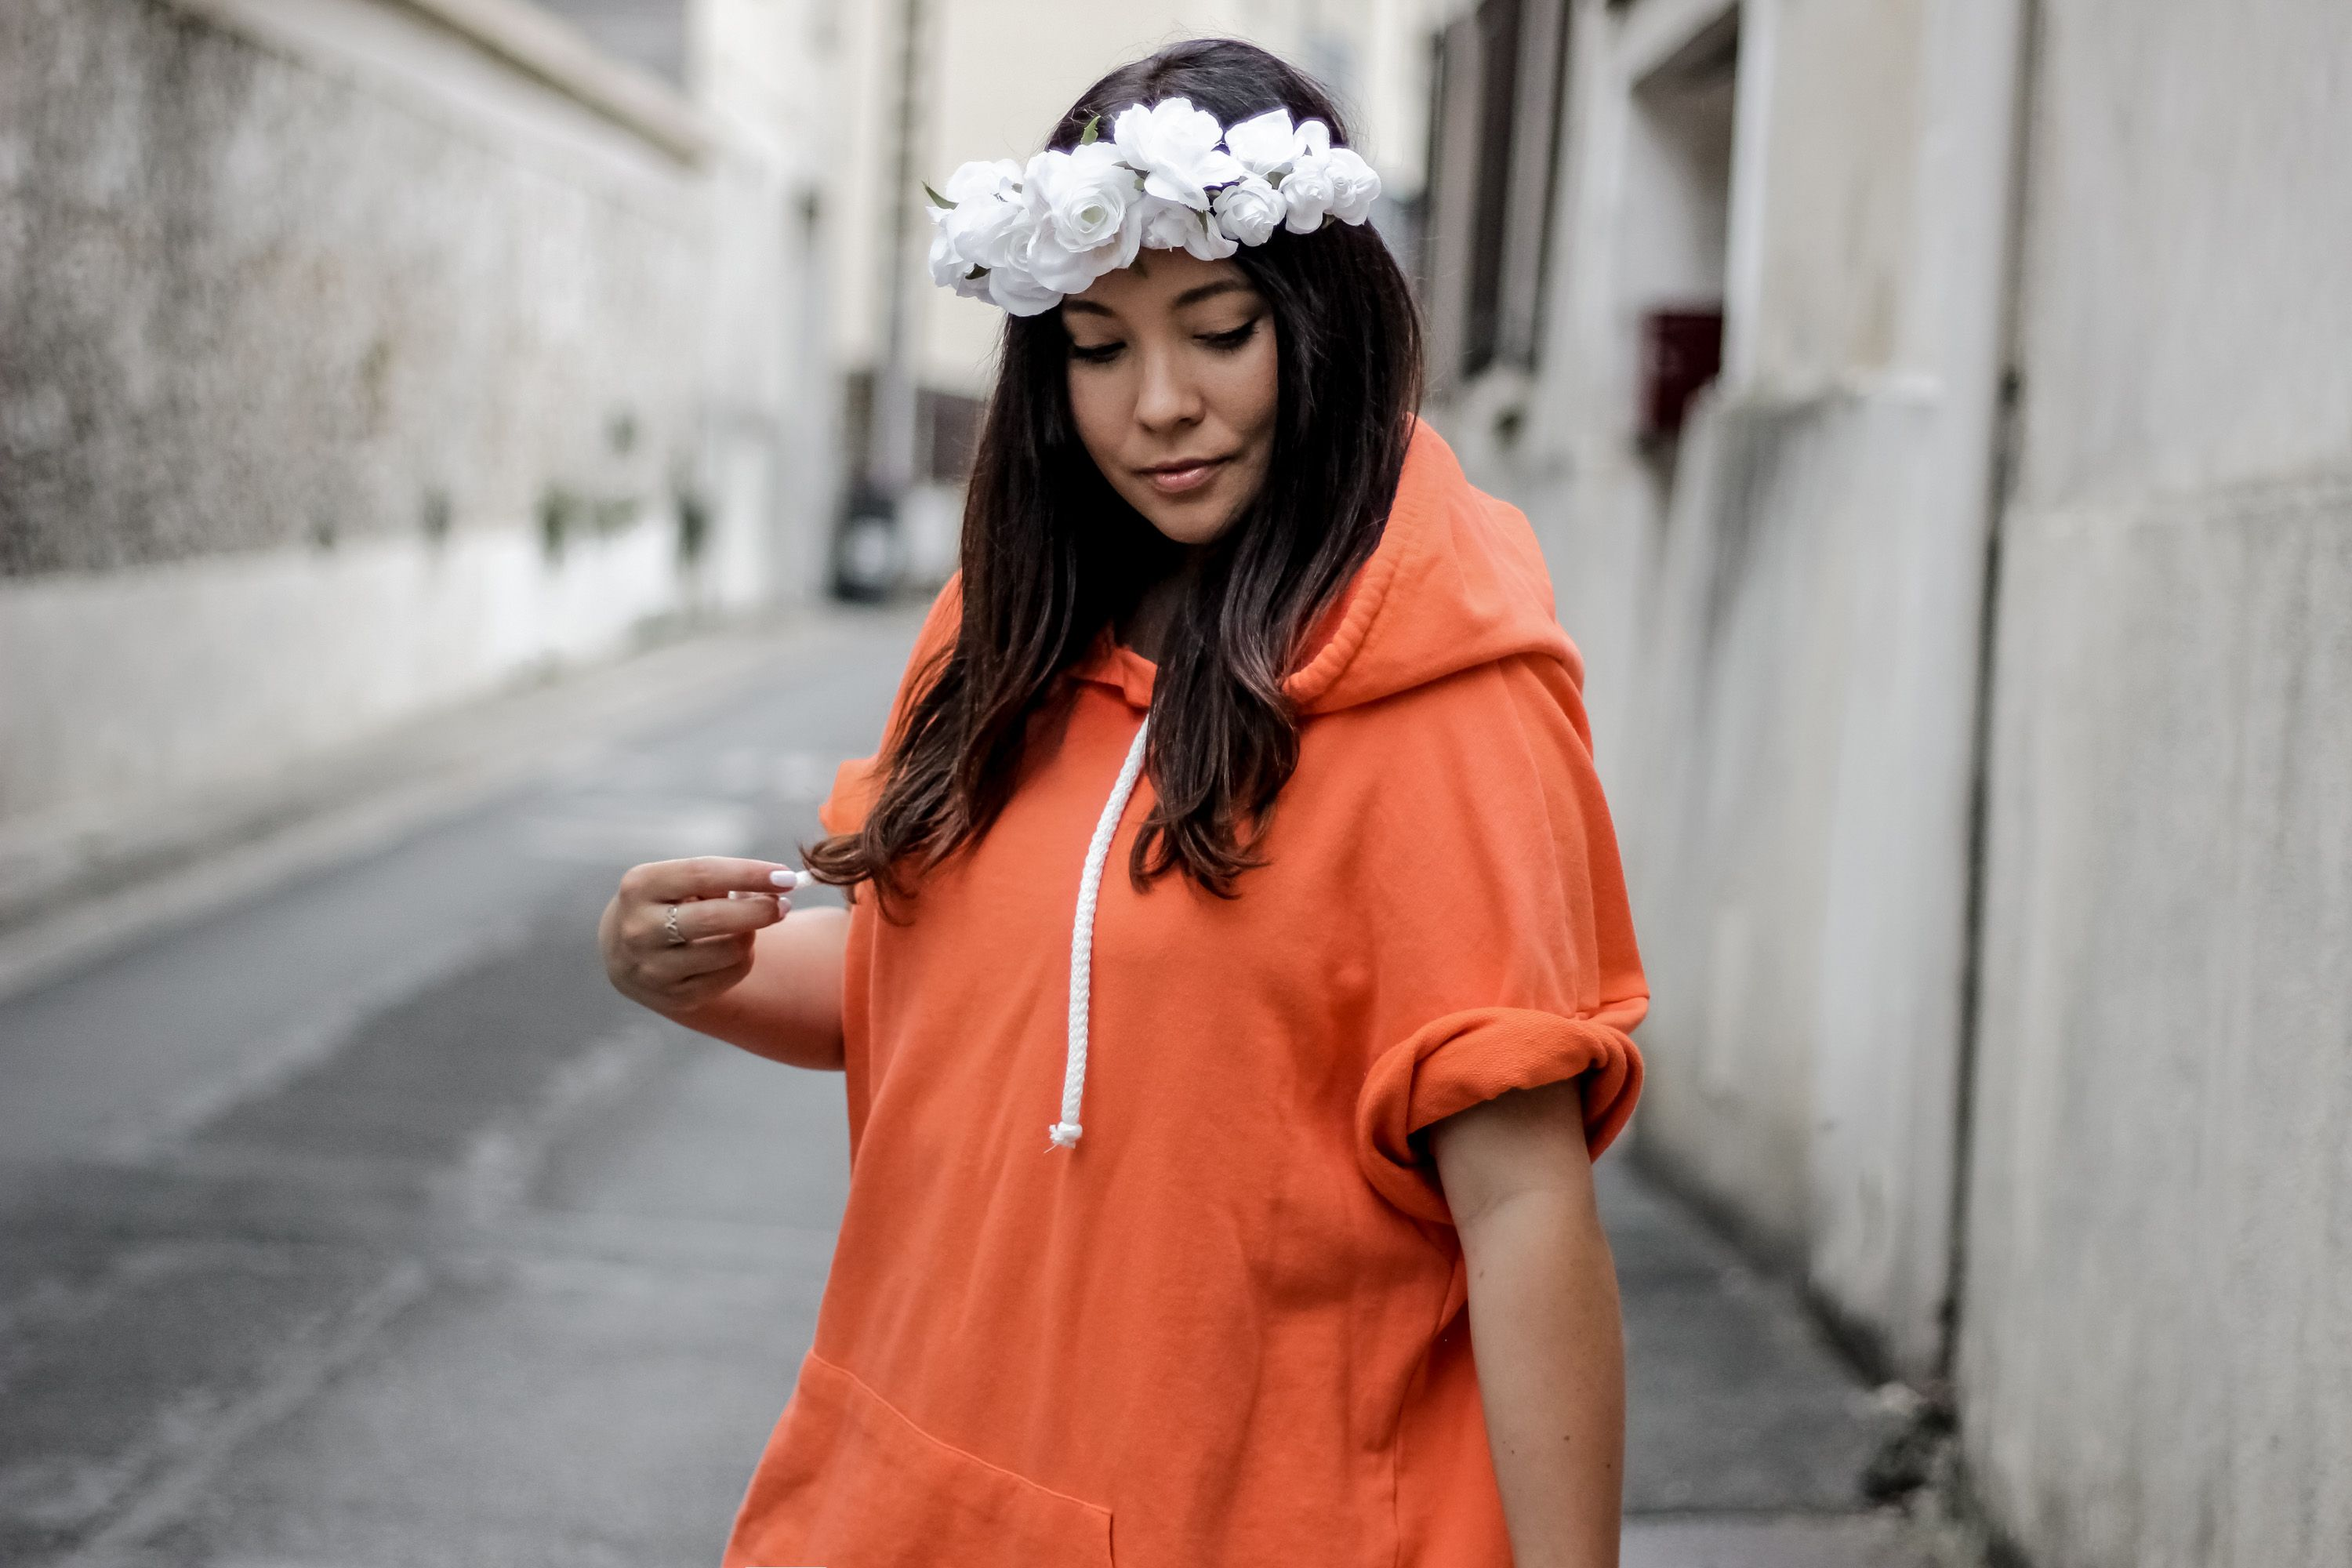 sweat orange, zara, forever 21, pull and bear, espadrilles femme, espadrilles clous, espadrilles blanches, boheme, boho, blog mode, blogueuse, mode, the green ananas, orange, boho, gypsy